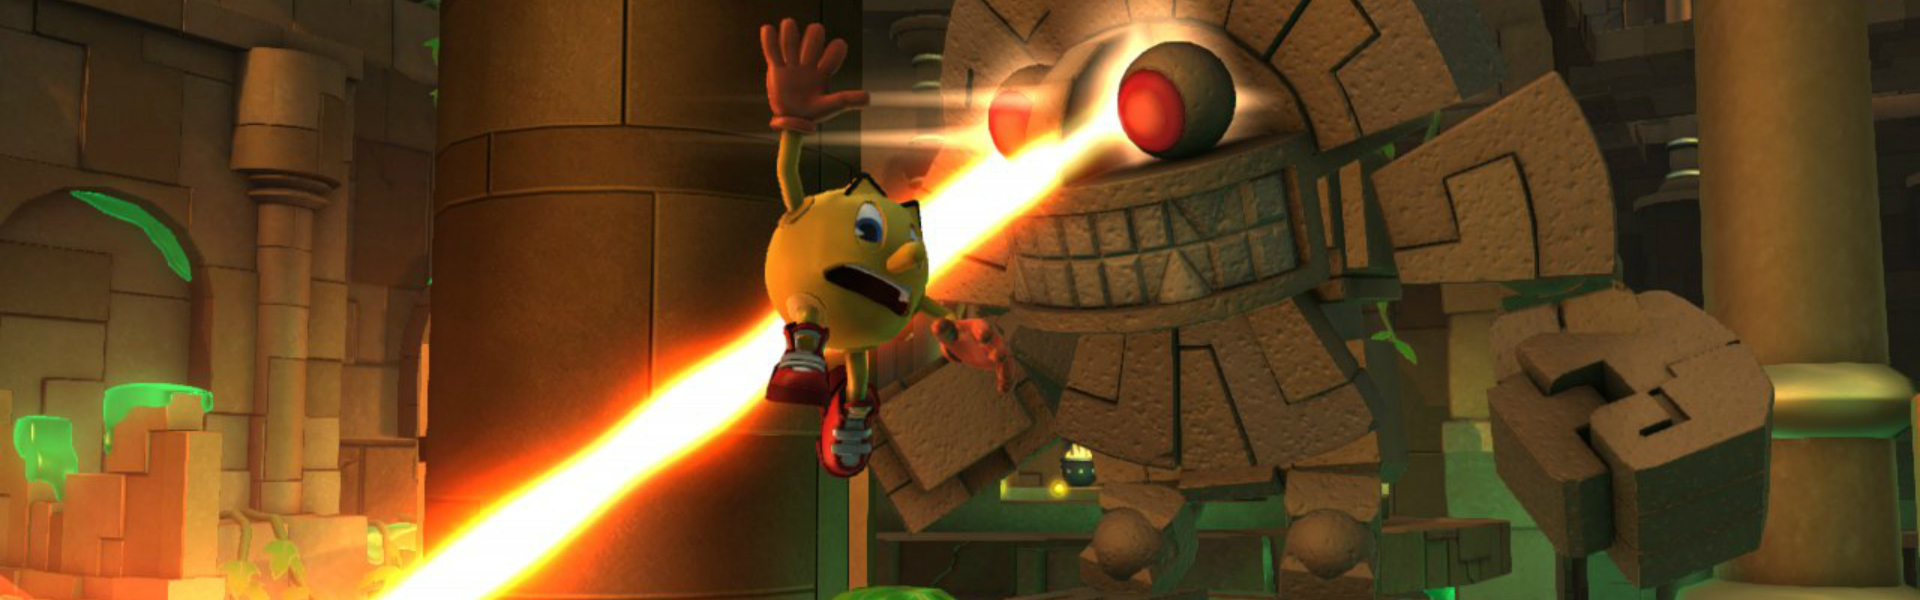 pac-man-ghostly-adventures-featured.jpg